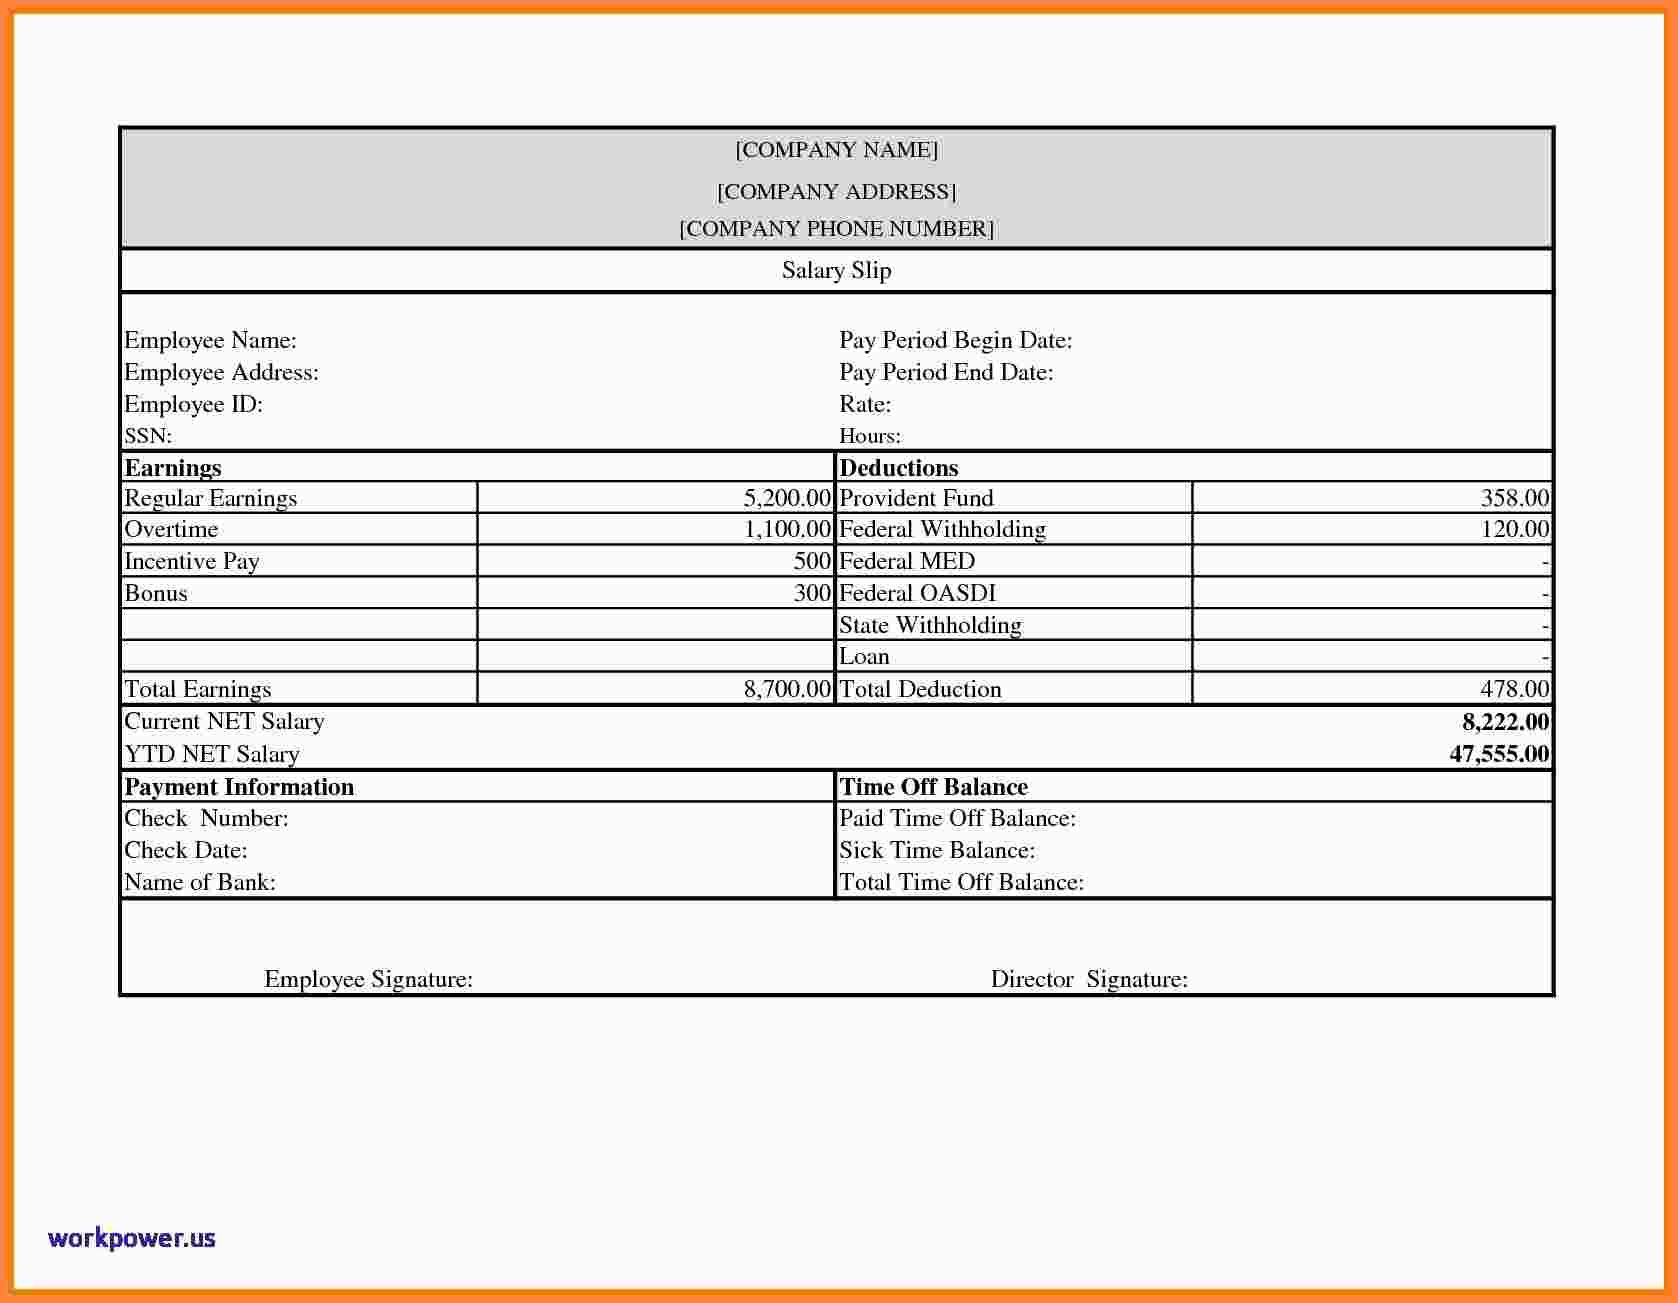 Free Blank Pay Stub Template Downloads.free-Payroll-Check-Stub - Free Printable Check Stubs Download